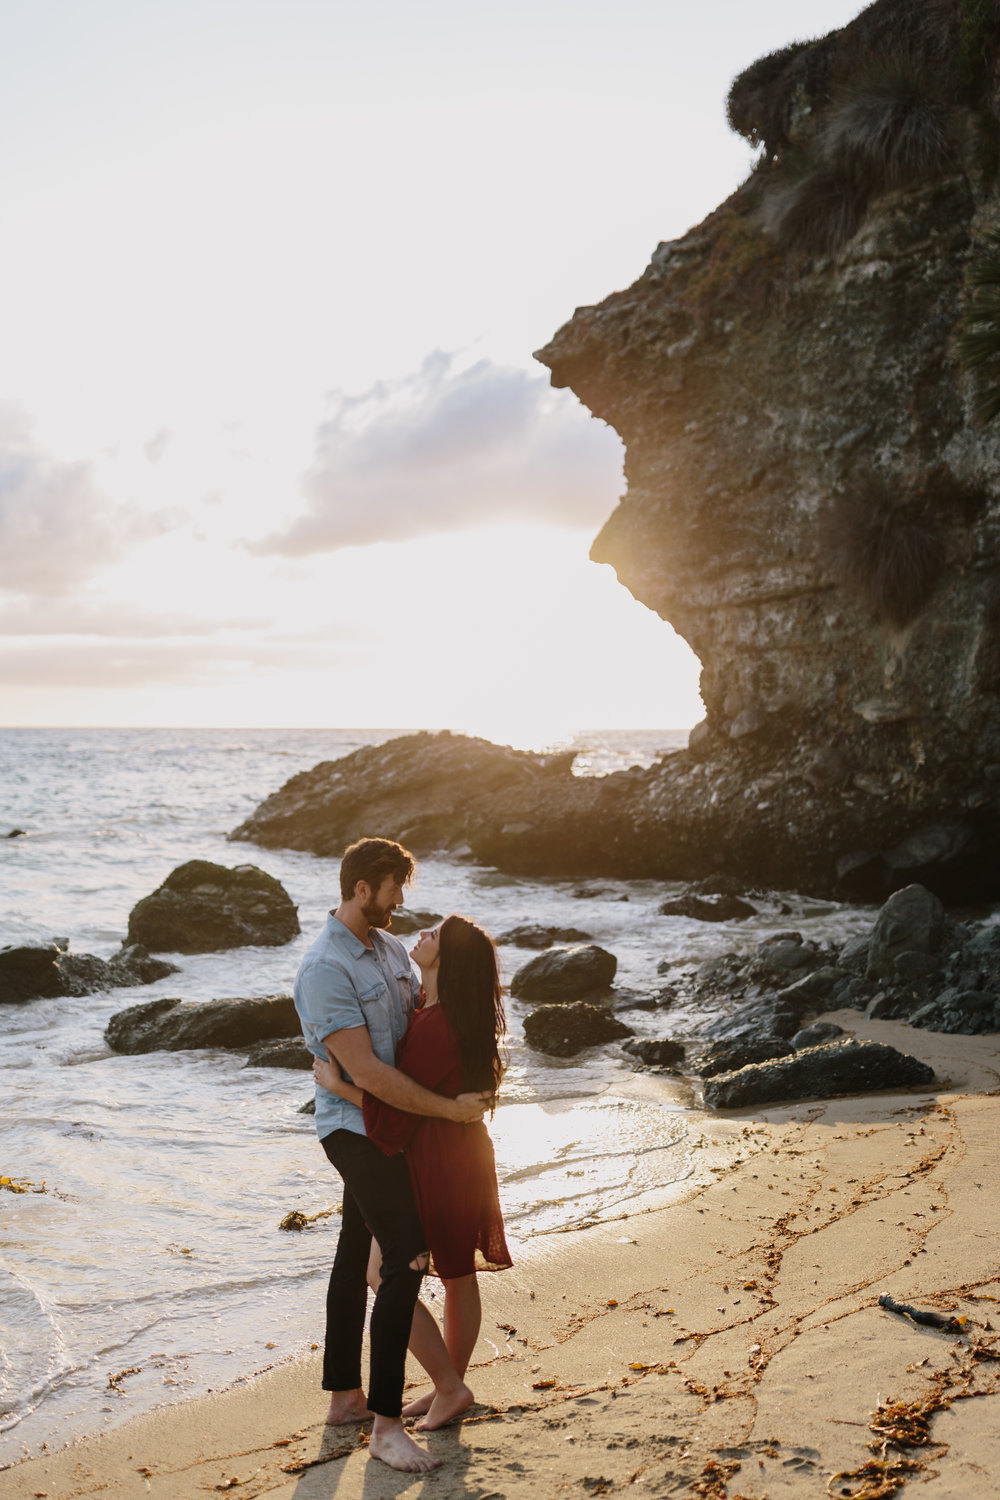 alyssa barletter photography laguna beach california anniversary engagement wedding photographer sunset-13.jpg